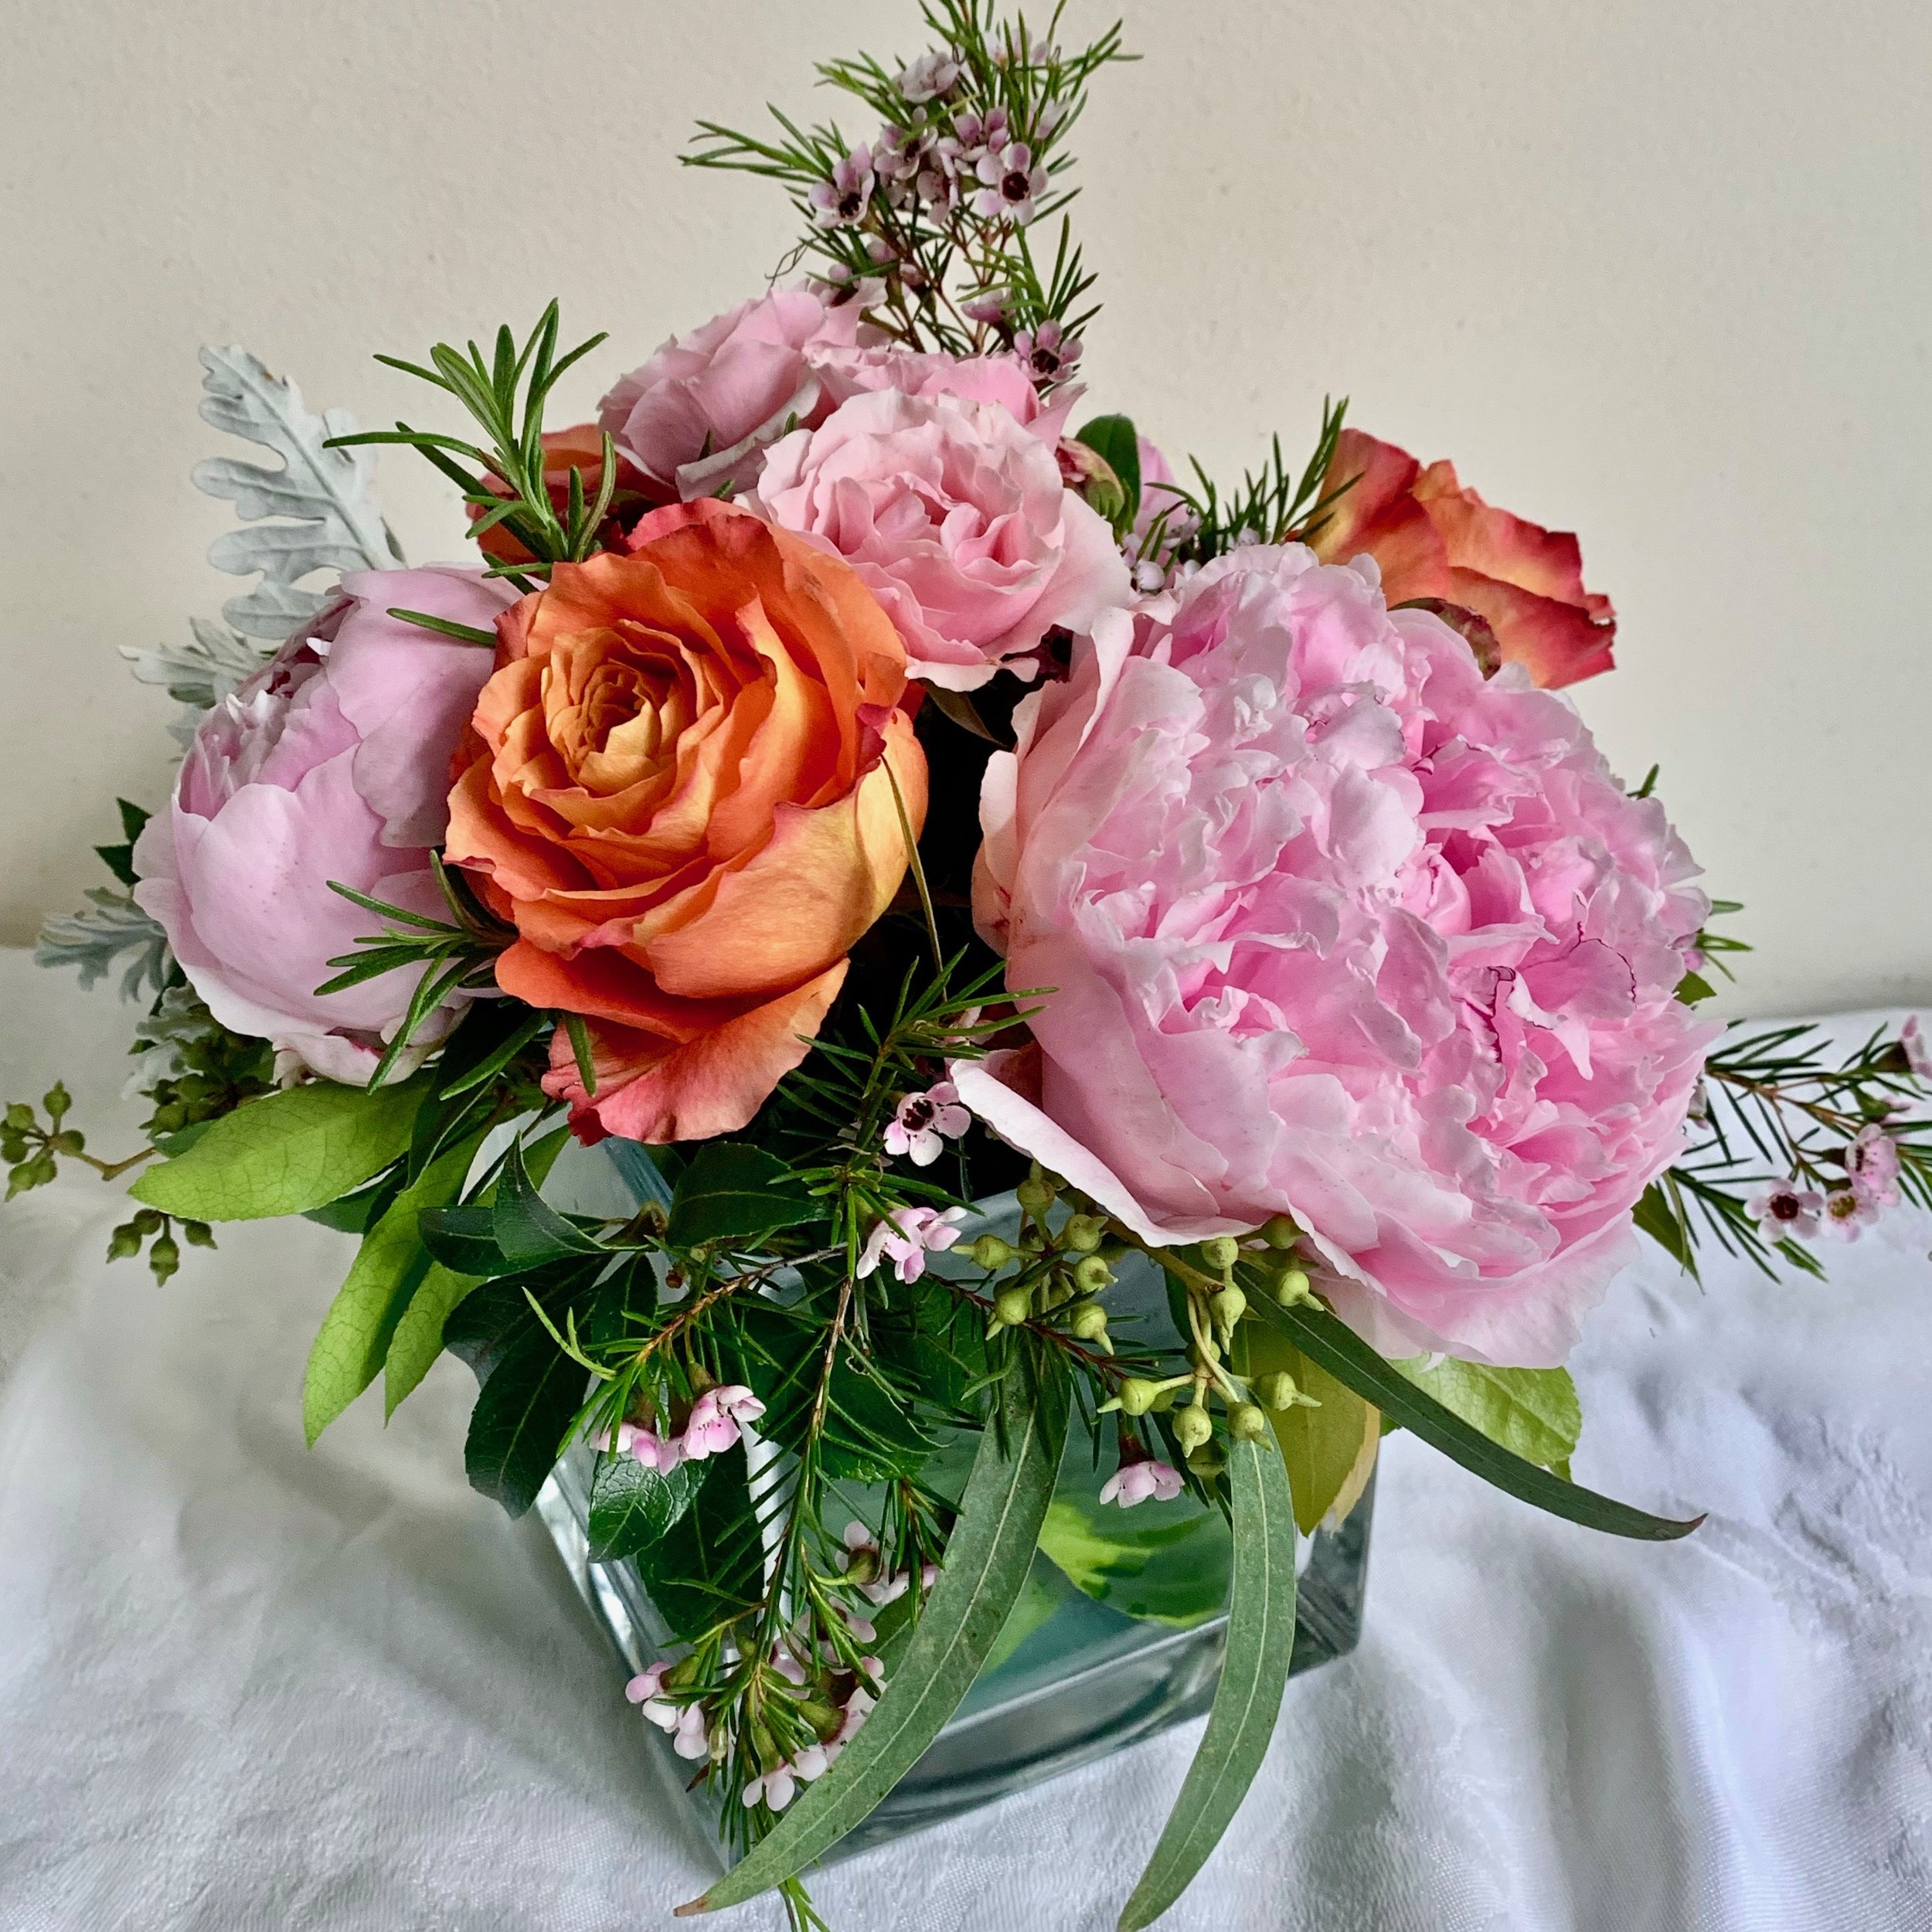 ROSEMARY for Remembrance   with fragrant waxflower, peonies and roses in a leaf-lined glass cube, $60.